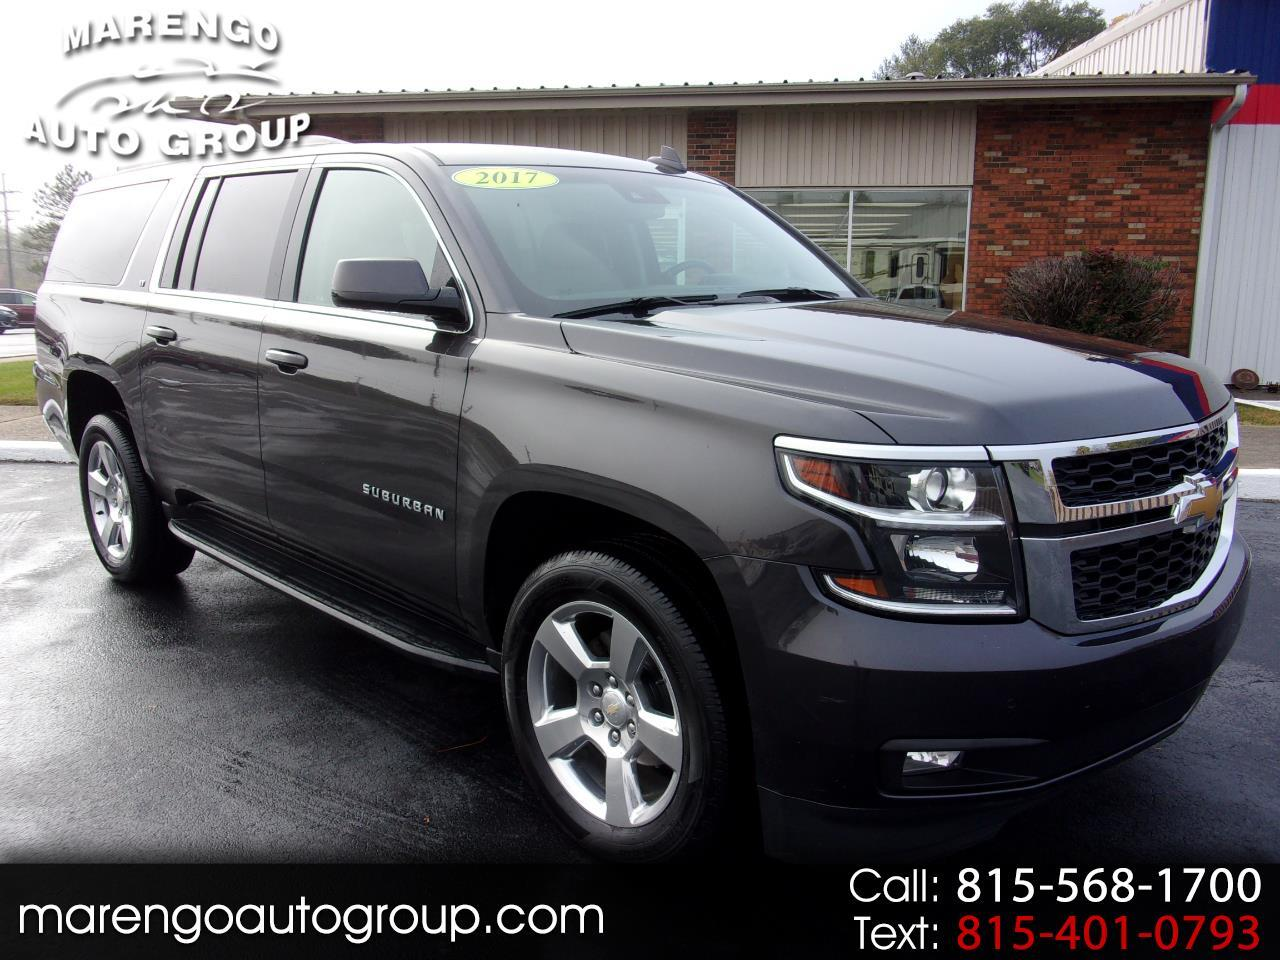 used 2017 Chevrolet Suburban car, priced at $40,996